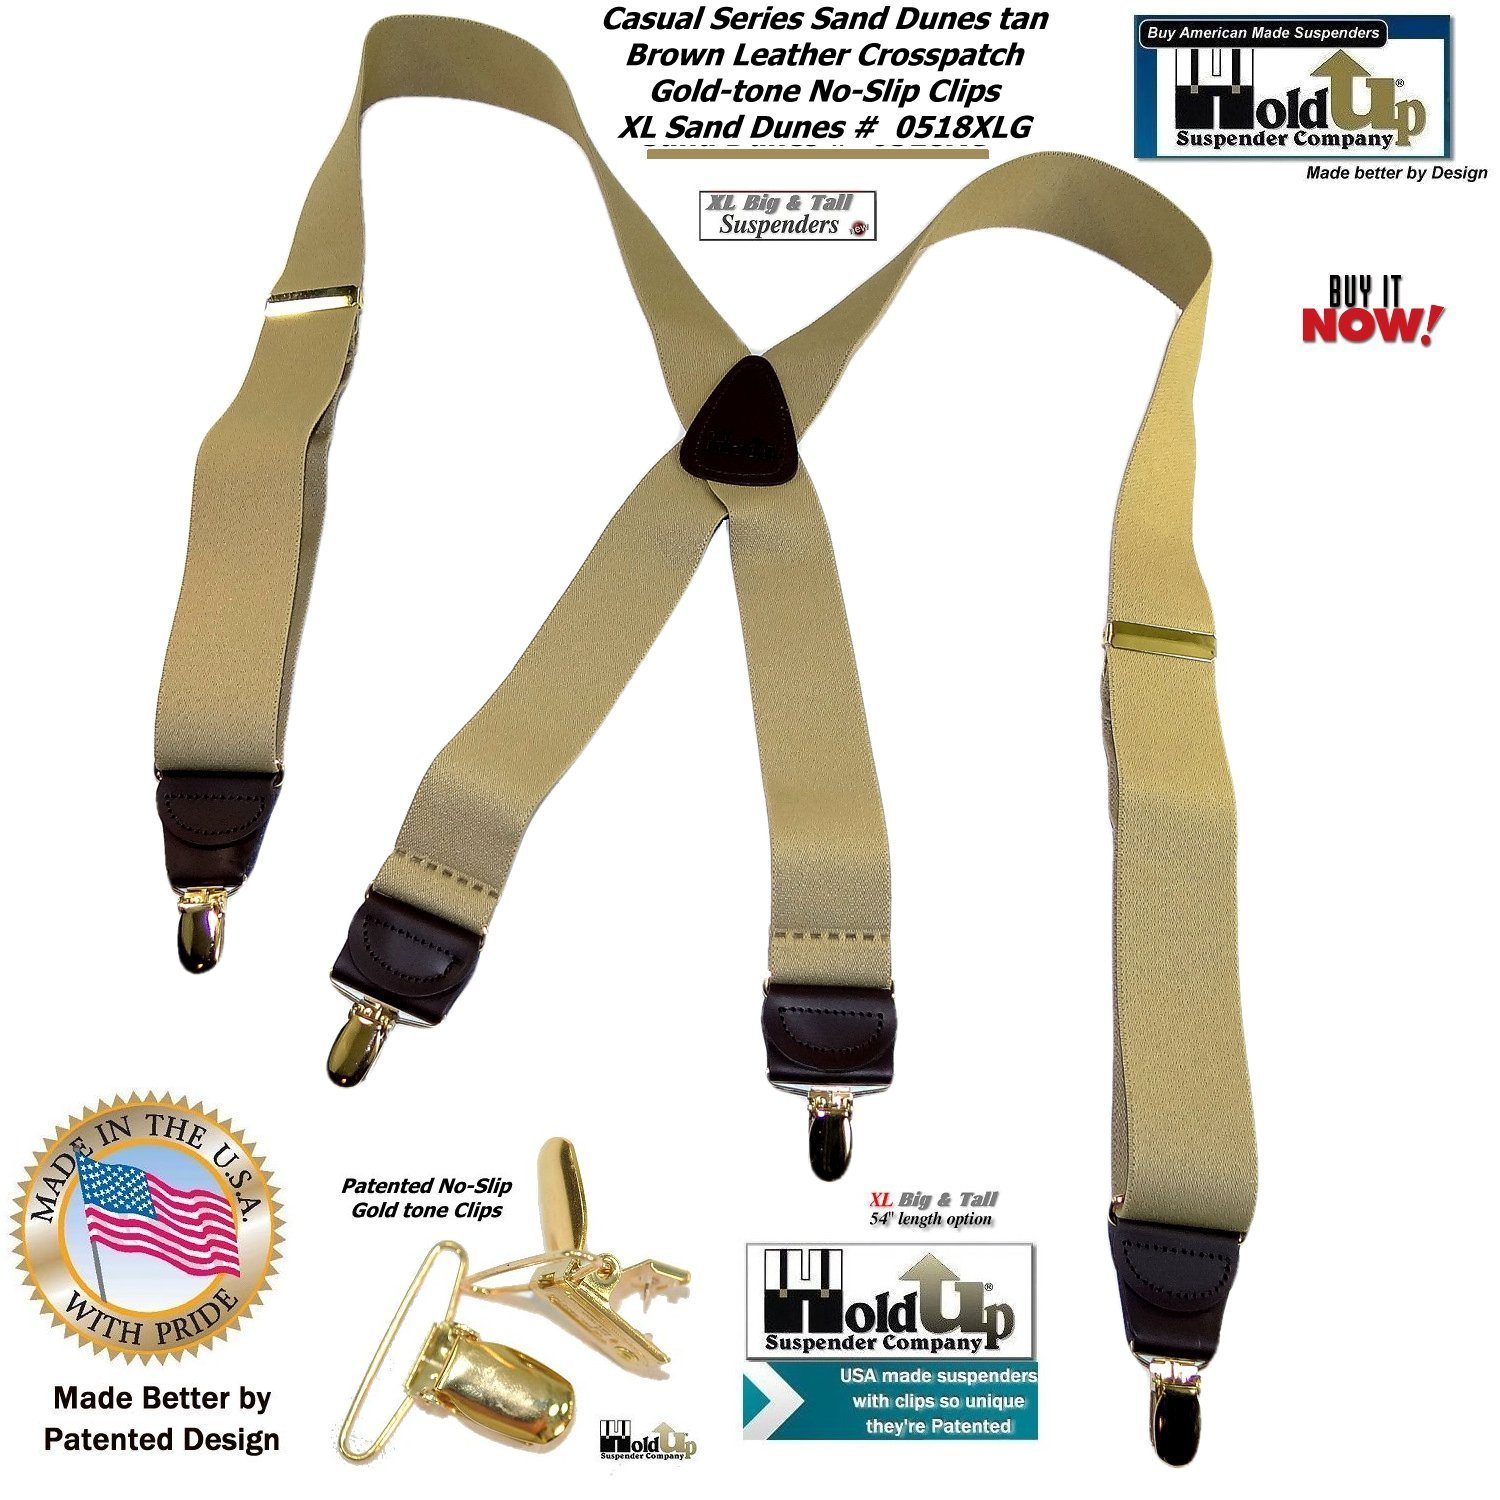 Hold Suspender Companys XL Sand Dunes light Tan Casual Suspenders in X-back and Patented Gold-tone no-slip Clips Holdup Suspender Company Inc 0518XLG